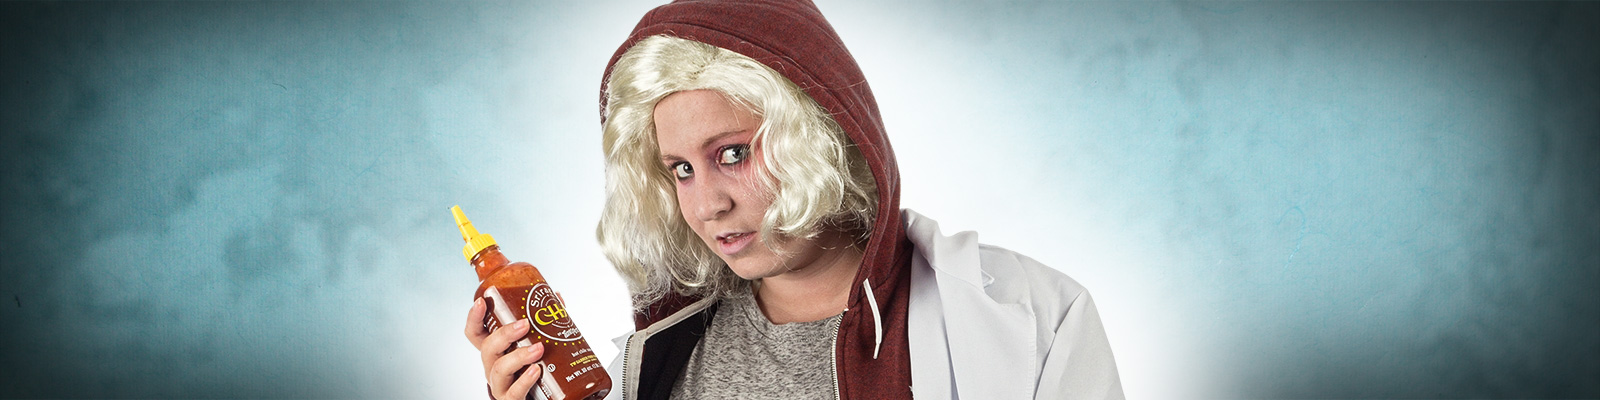 DIY iZombie Costume